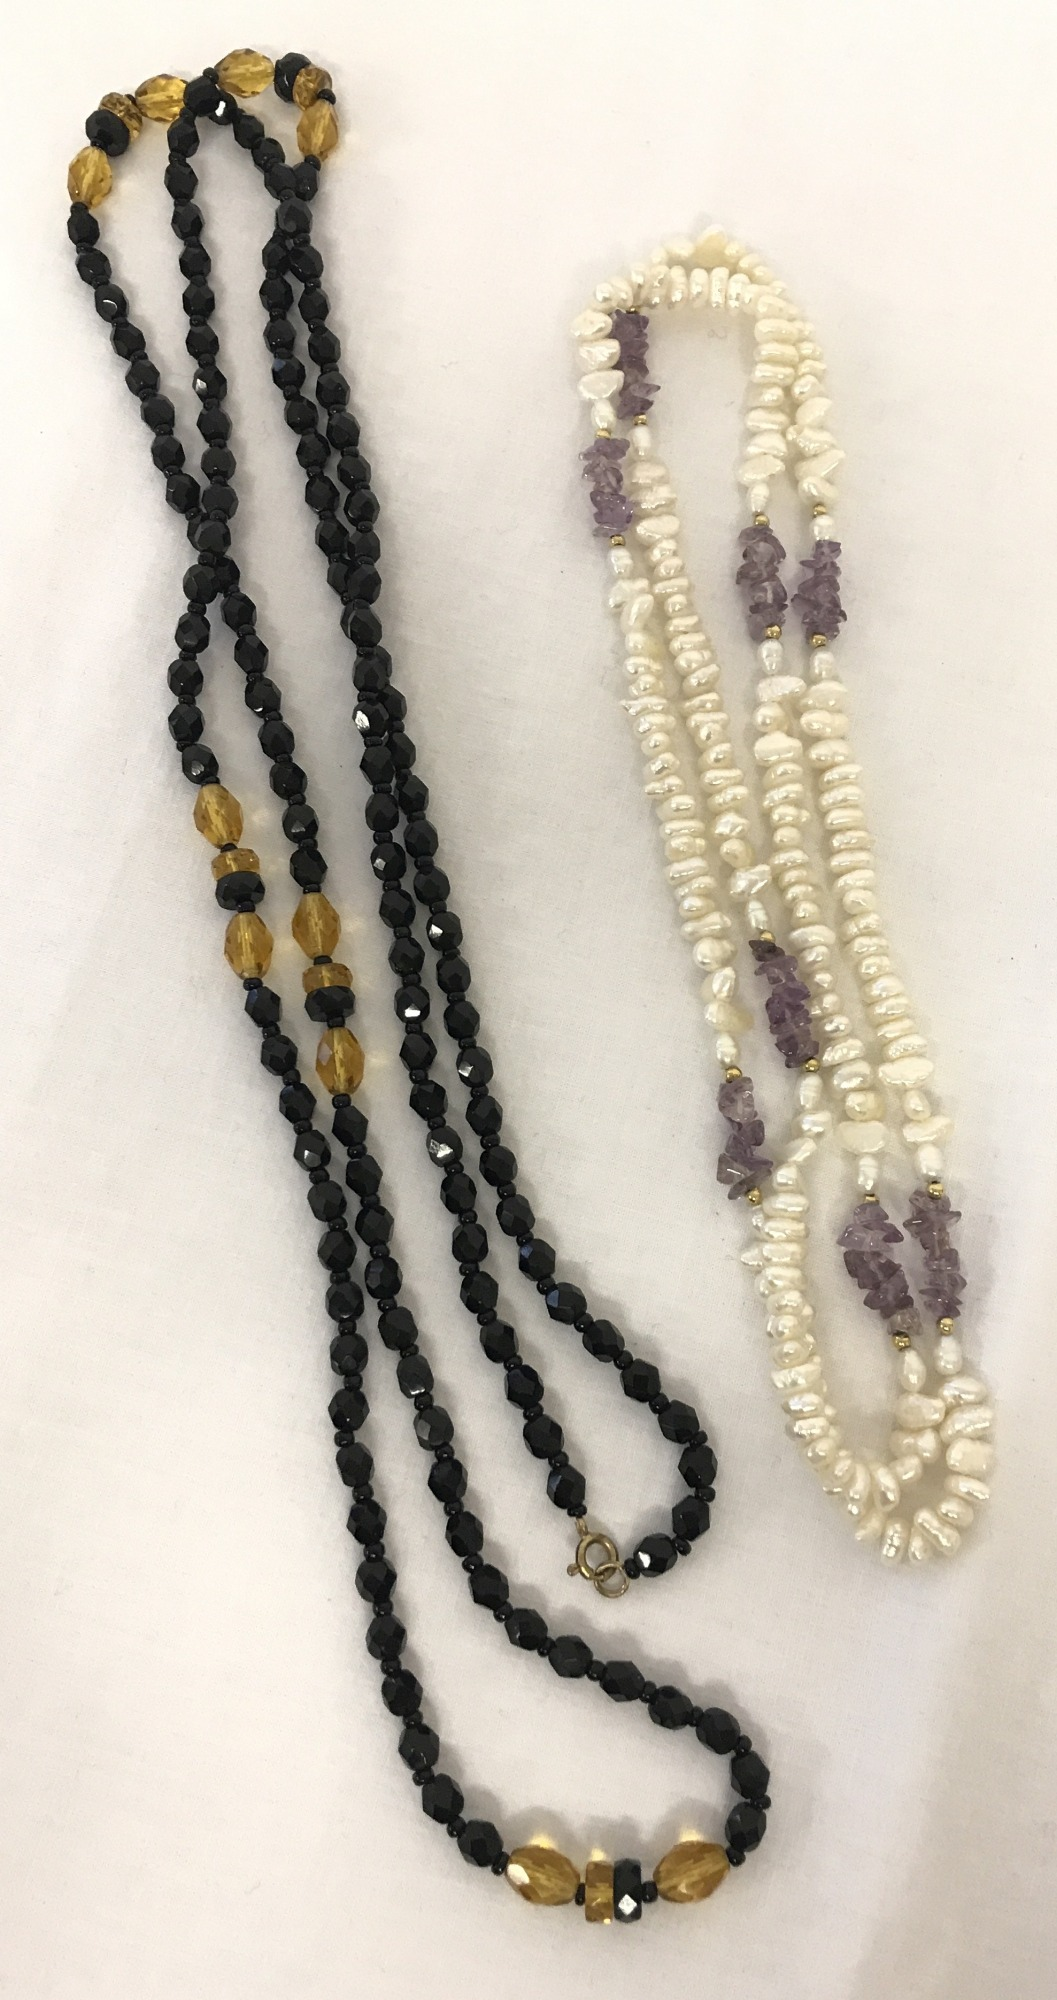 Lot 54 - 2 long, beaded neacklaces. A freshwater potato pearl and amethyst chip, long necklace.